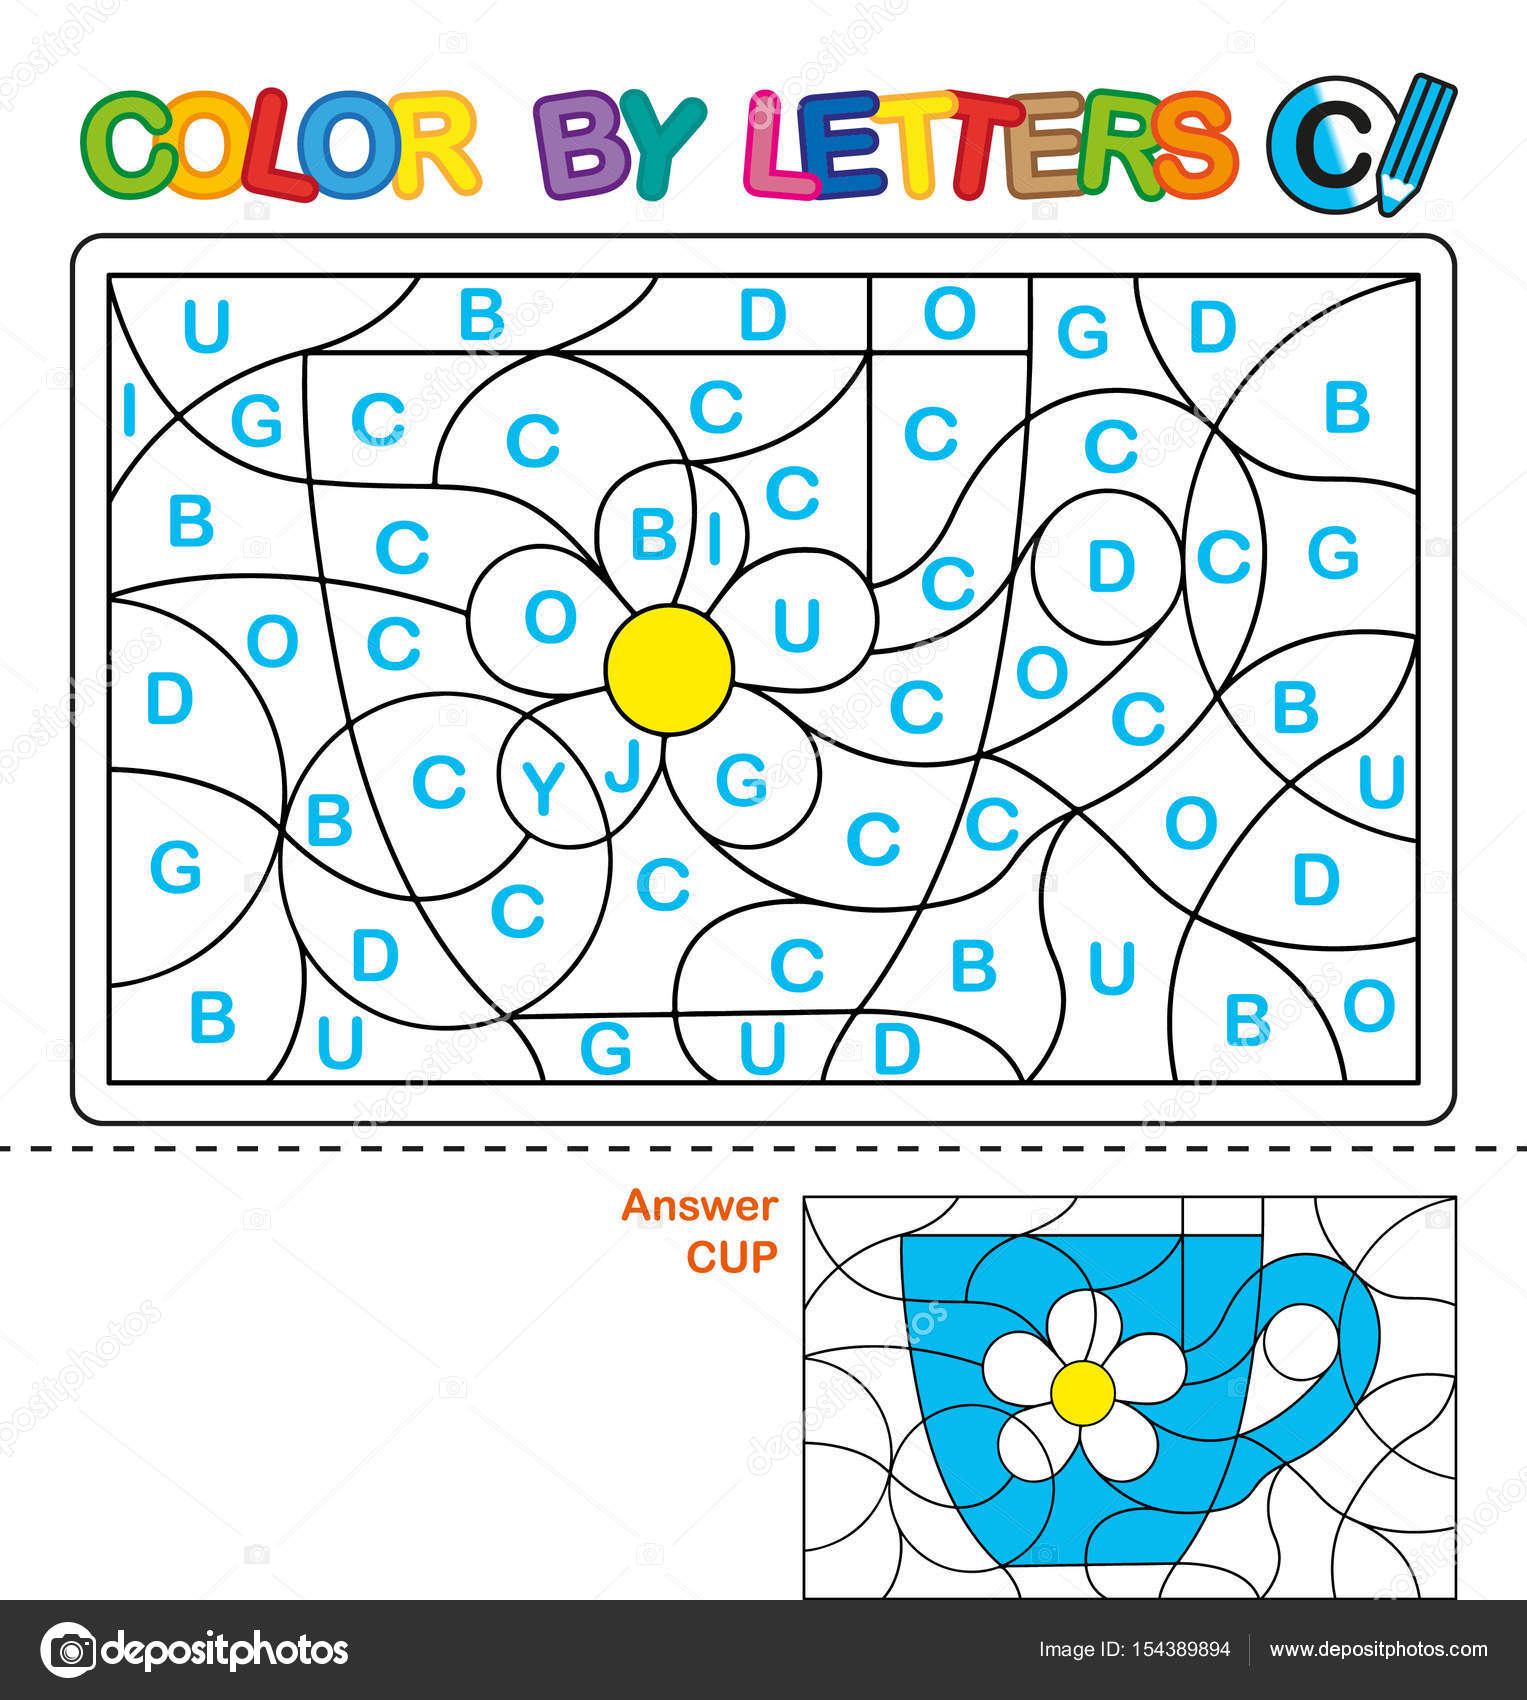 ABC Coloring Book For Children Color By Letters Learning The Capital Of Alphabet Puzzle Letter C Cup Preschool Education